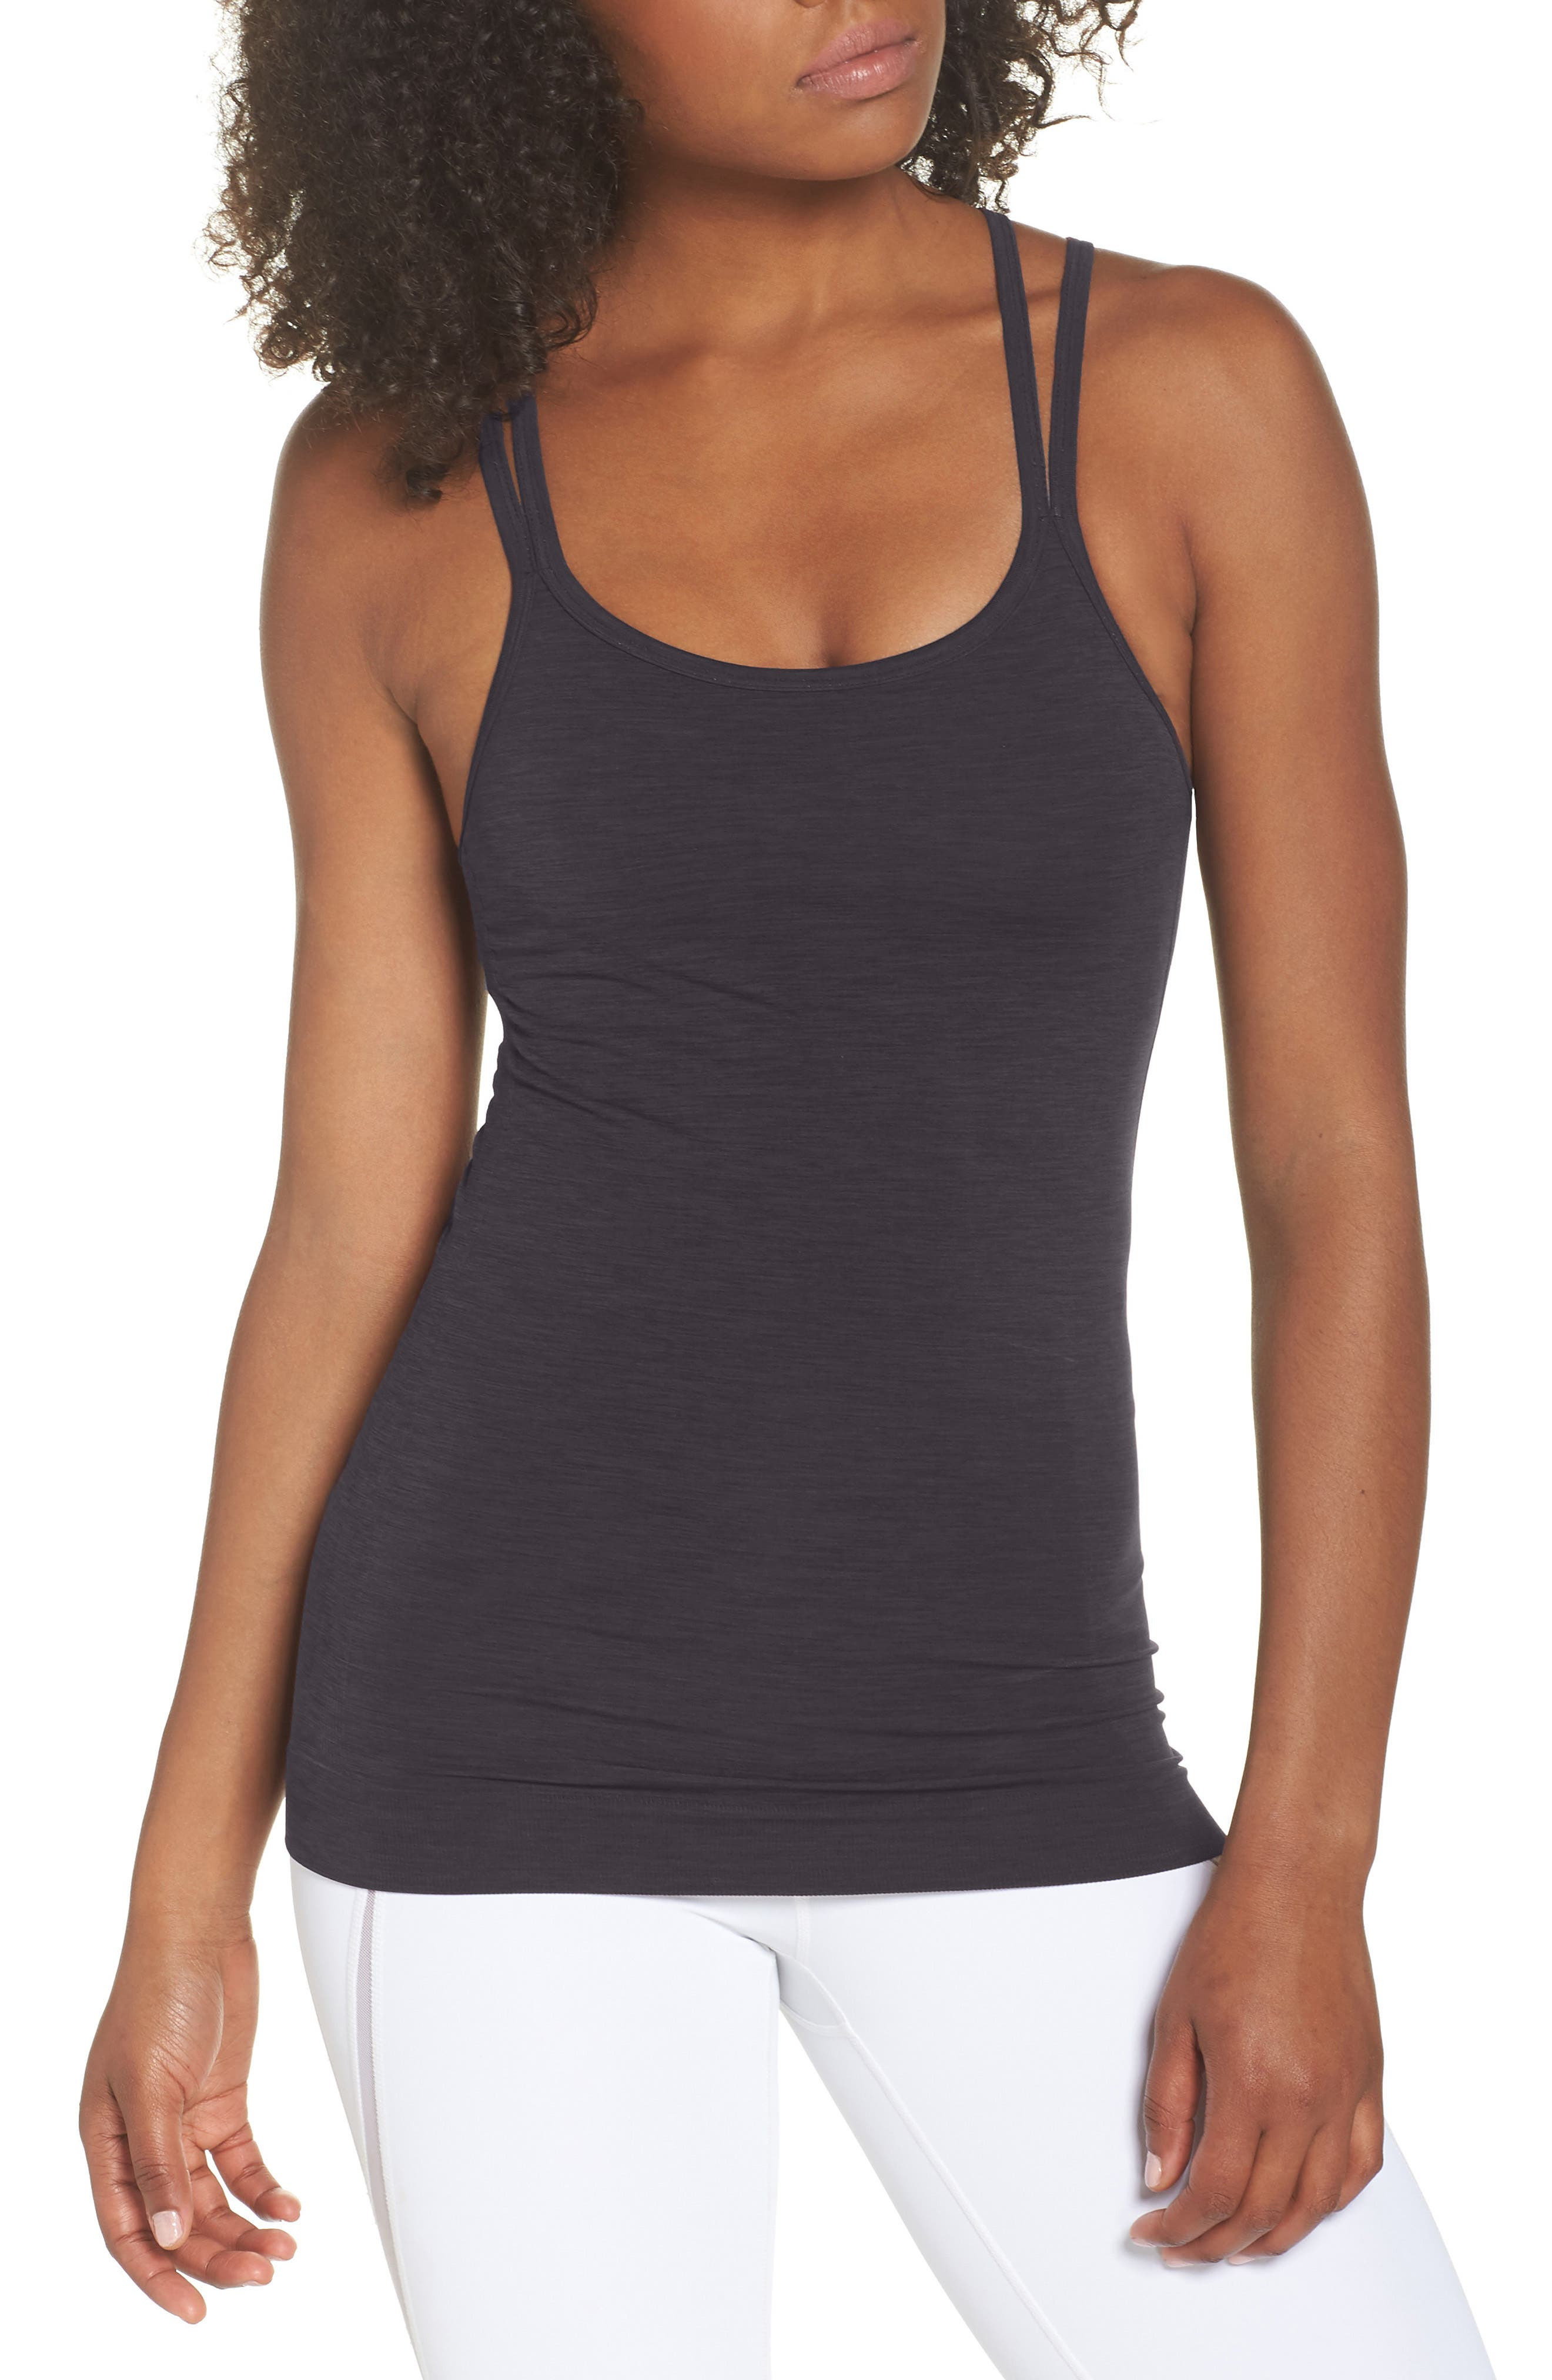 Namaska Yoga Tank,                         Main,                         color,